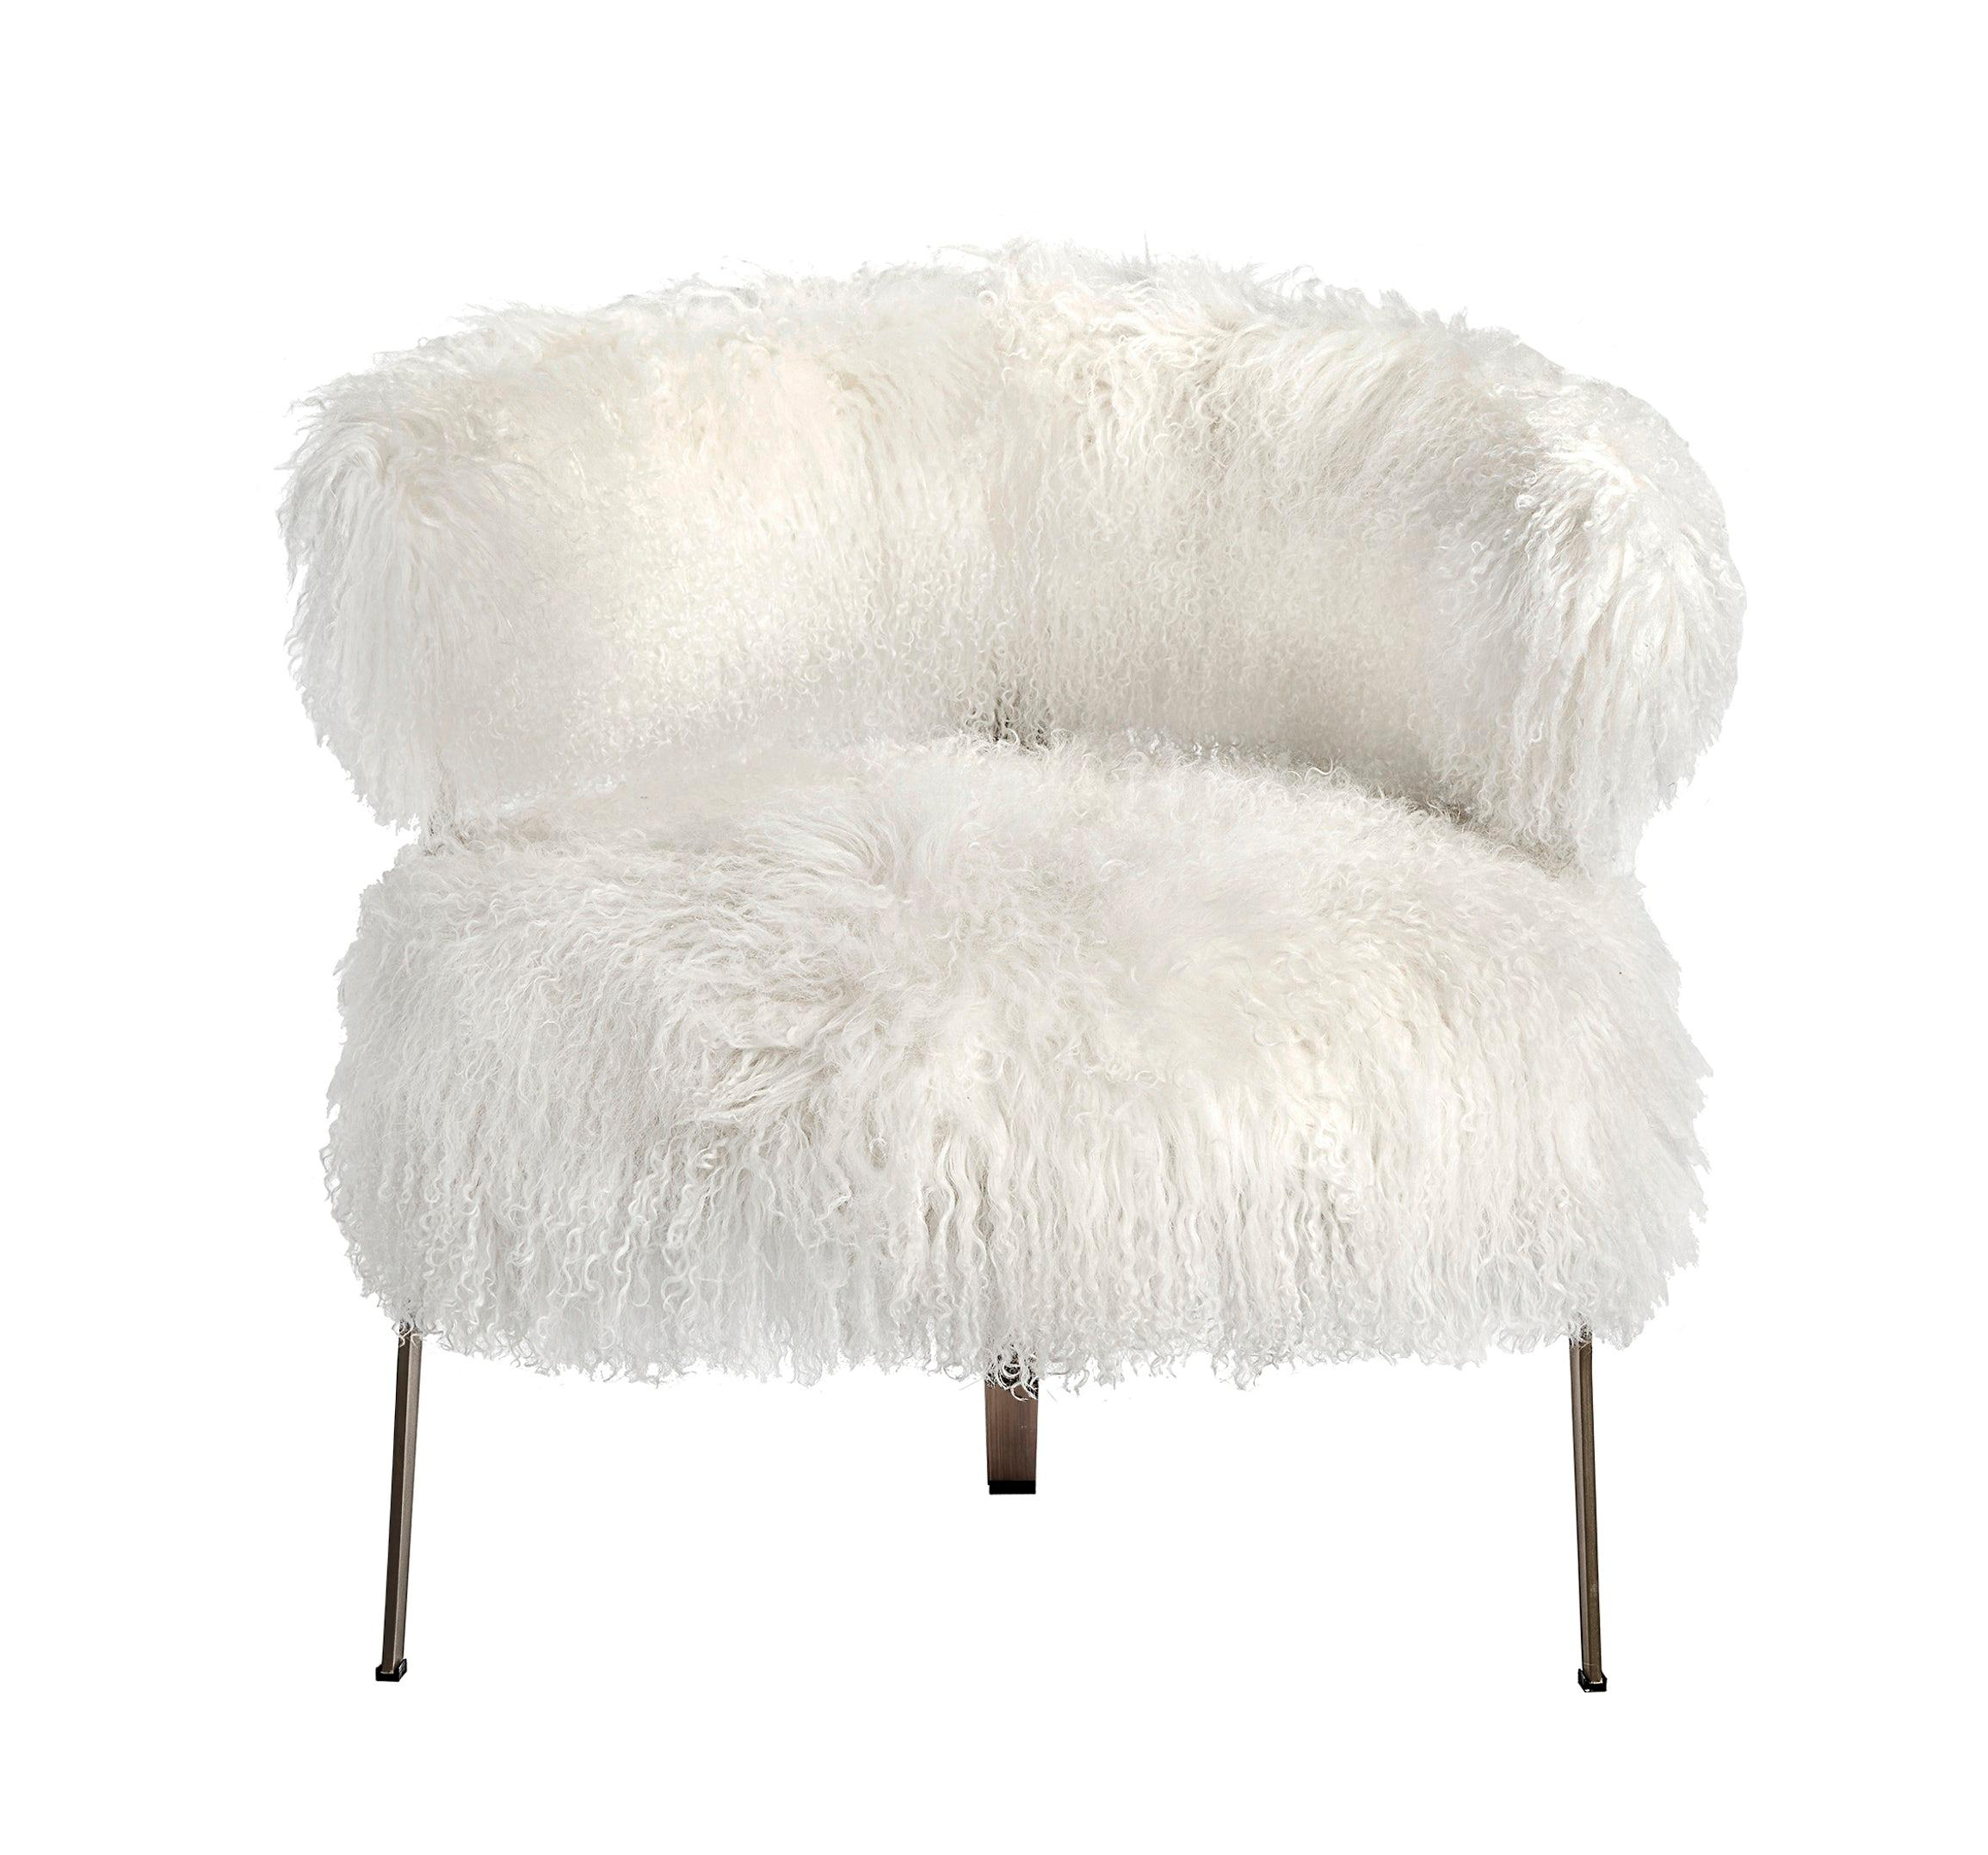 Groovy Mongolian White Sheepskin Armchair In Bronze Frame For Sale Gmtry Best Dining Table And Chair Ideas Images Gmtryco